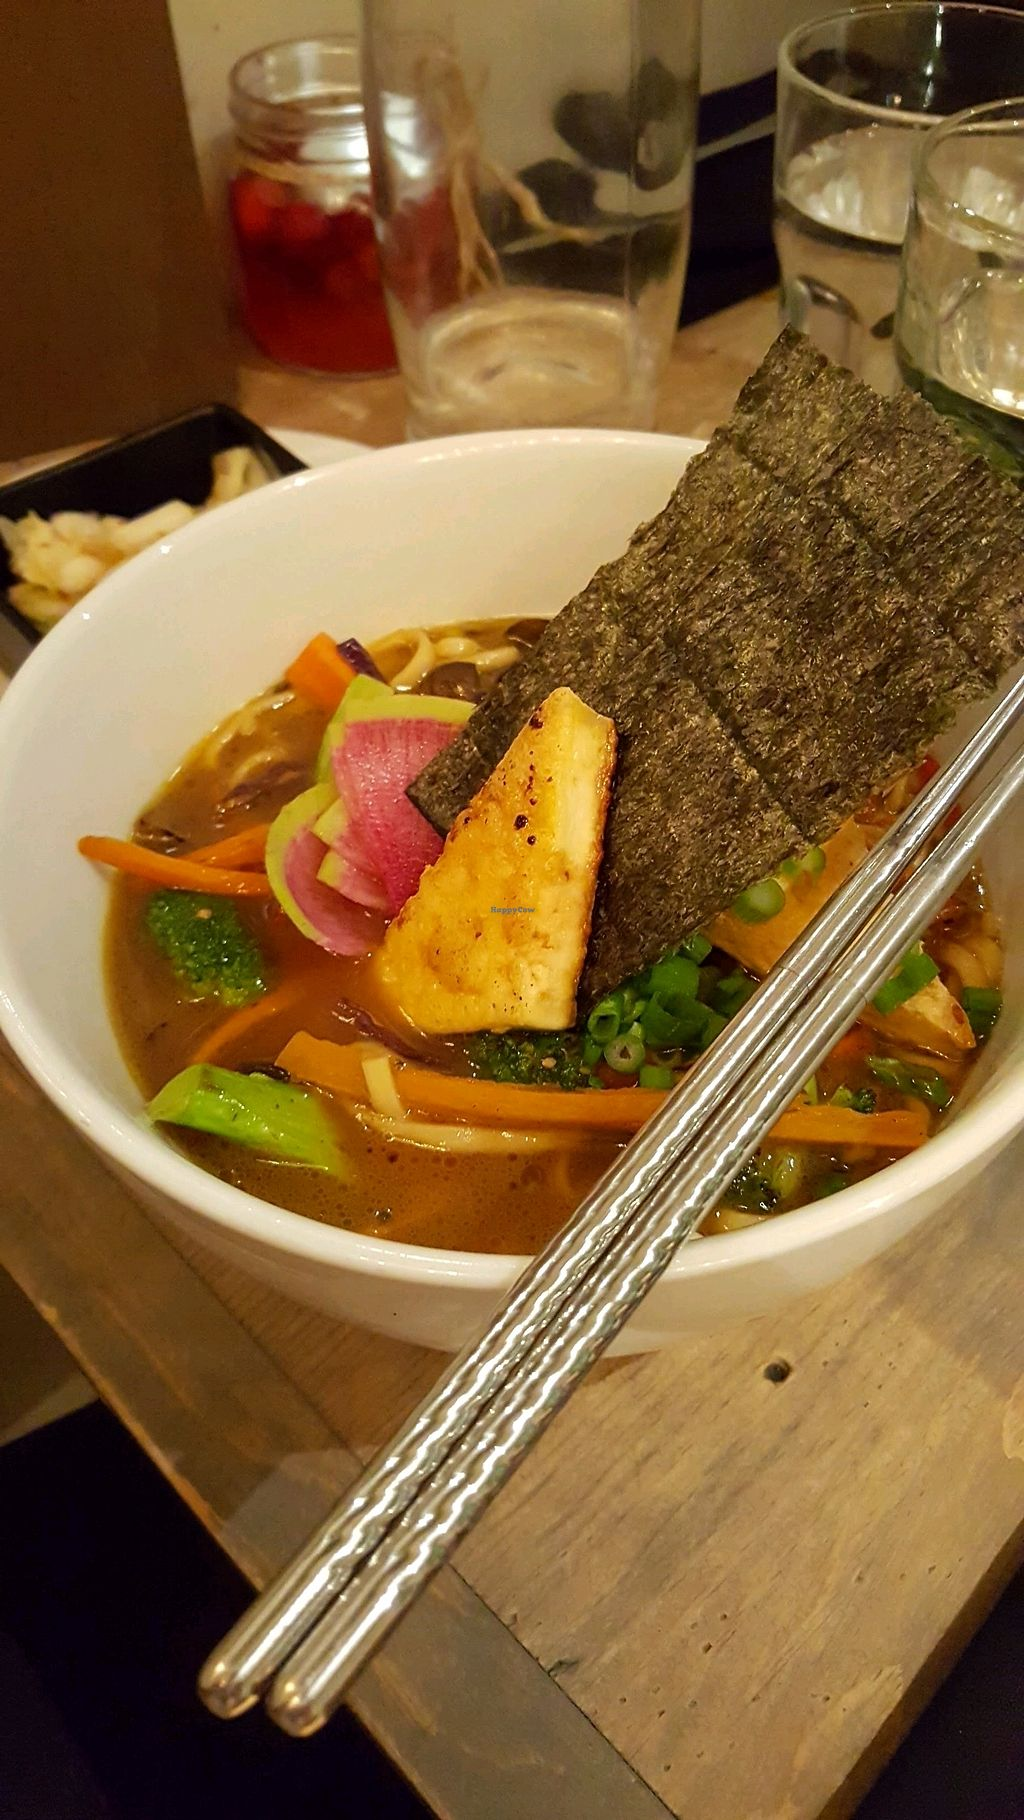 "Photo of enVie A Vegan Kitchen  by <a href=""/members/profile/Brit87"">Brit87</a> <br/>ramen <br/> January 29, 2018  - <a href='/contact/abuse/image/39515/352175'>Report</a>"